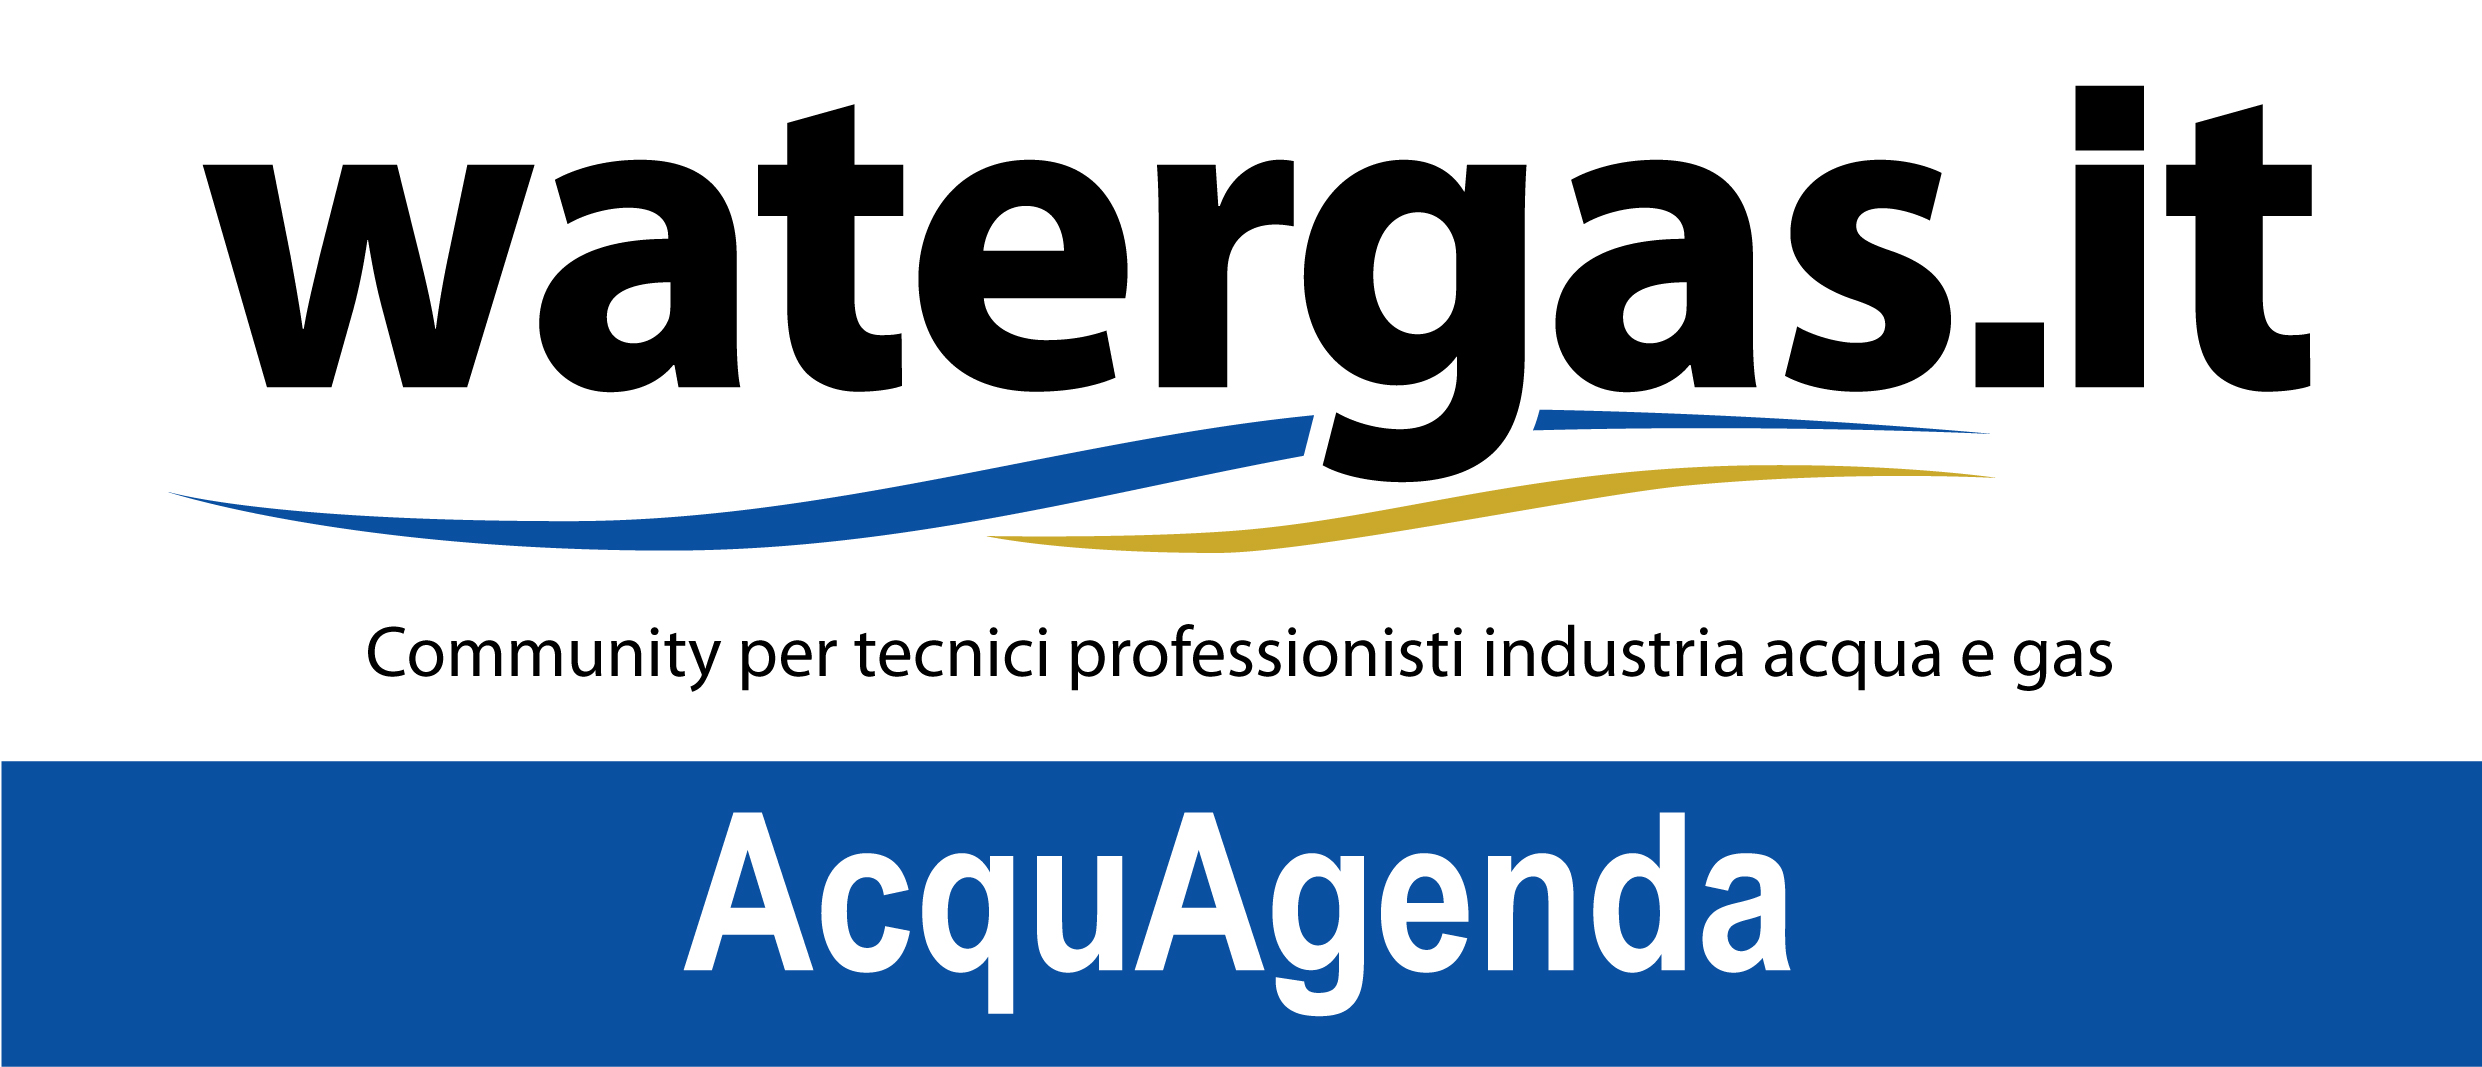 AcquAgenda logo 300 dpi